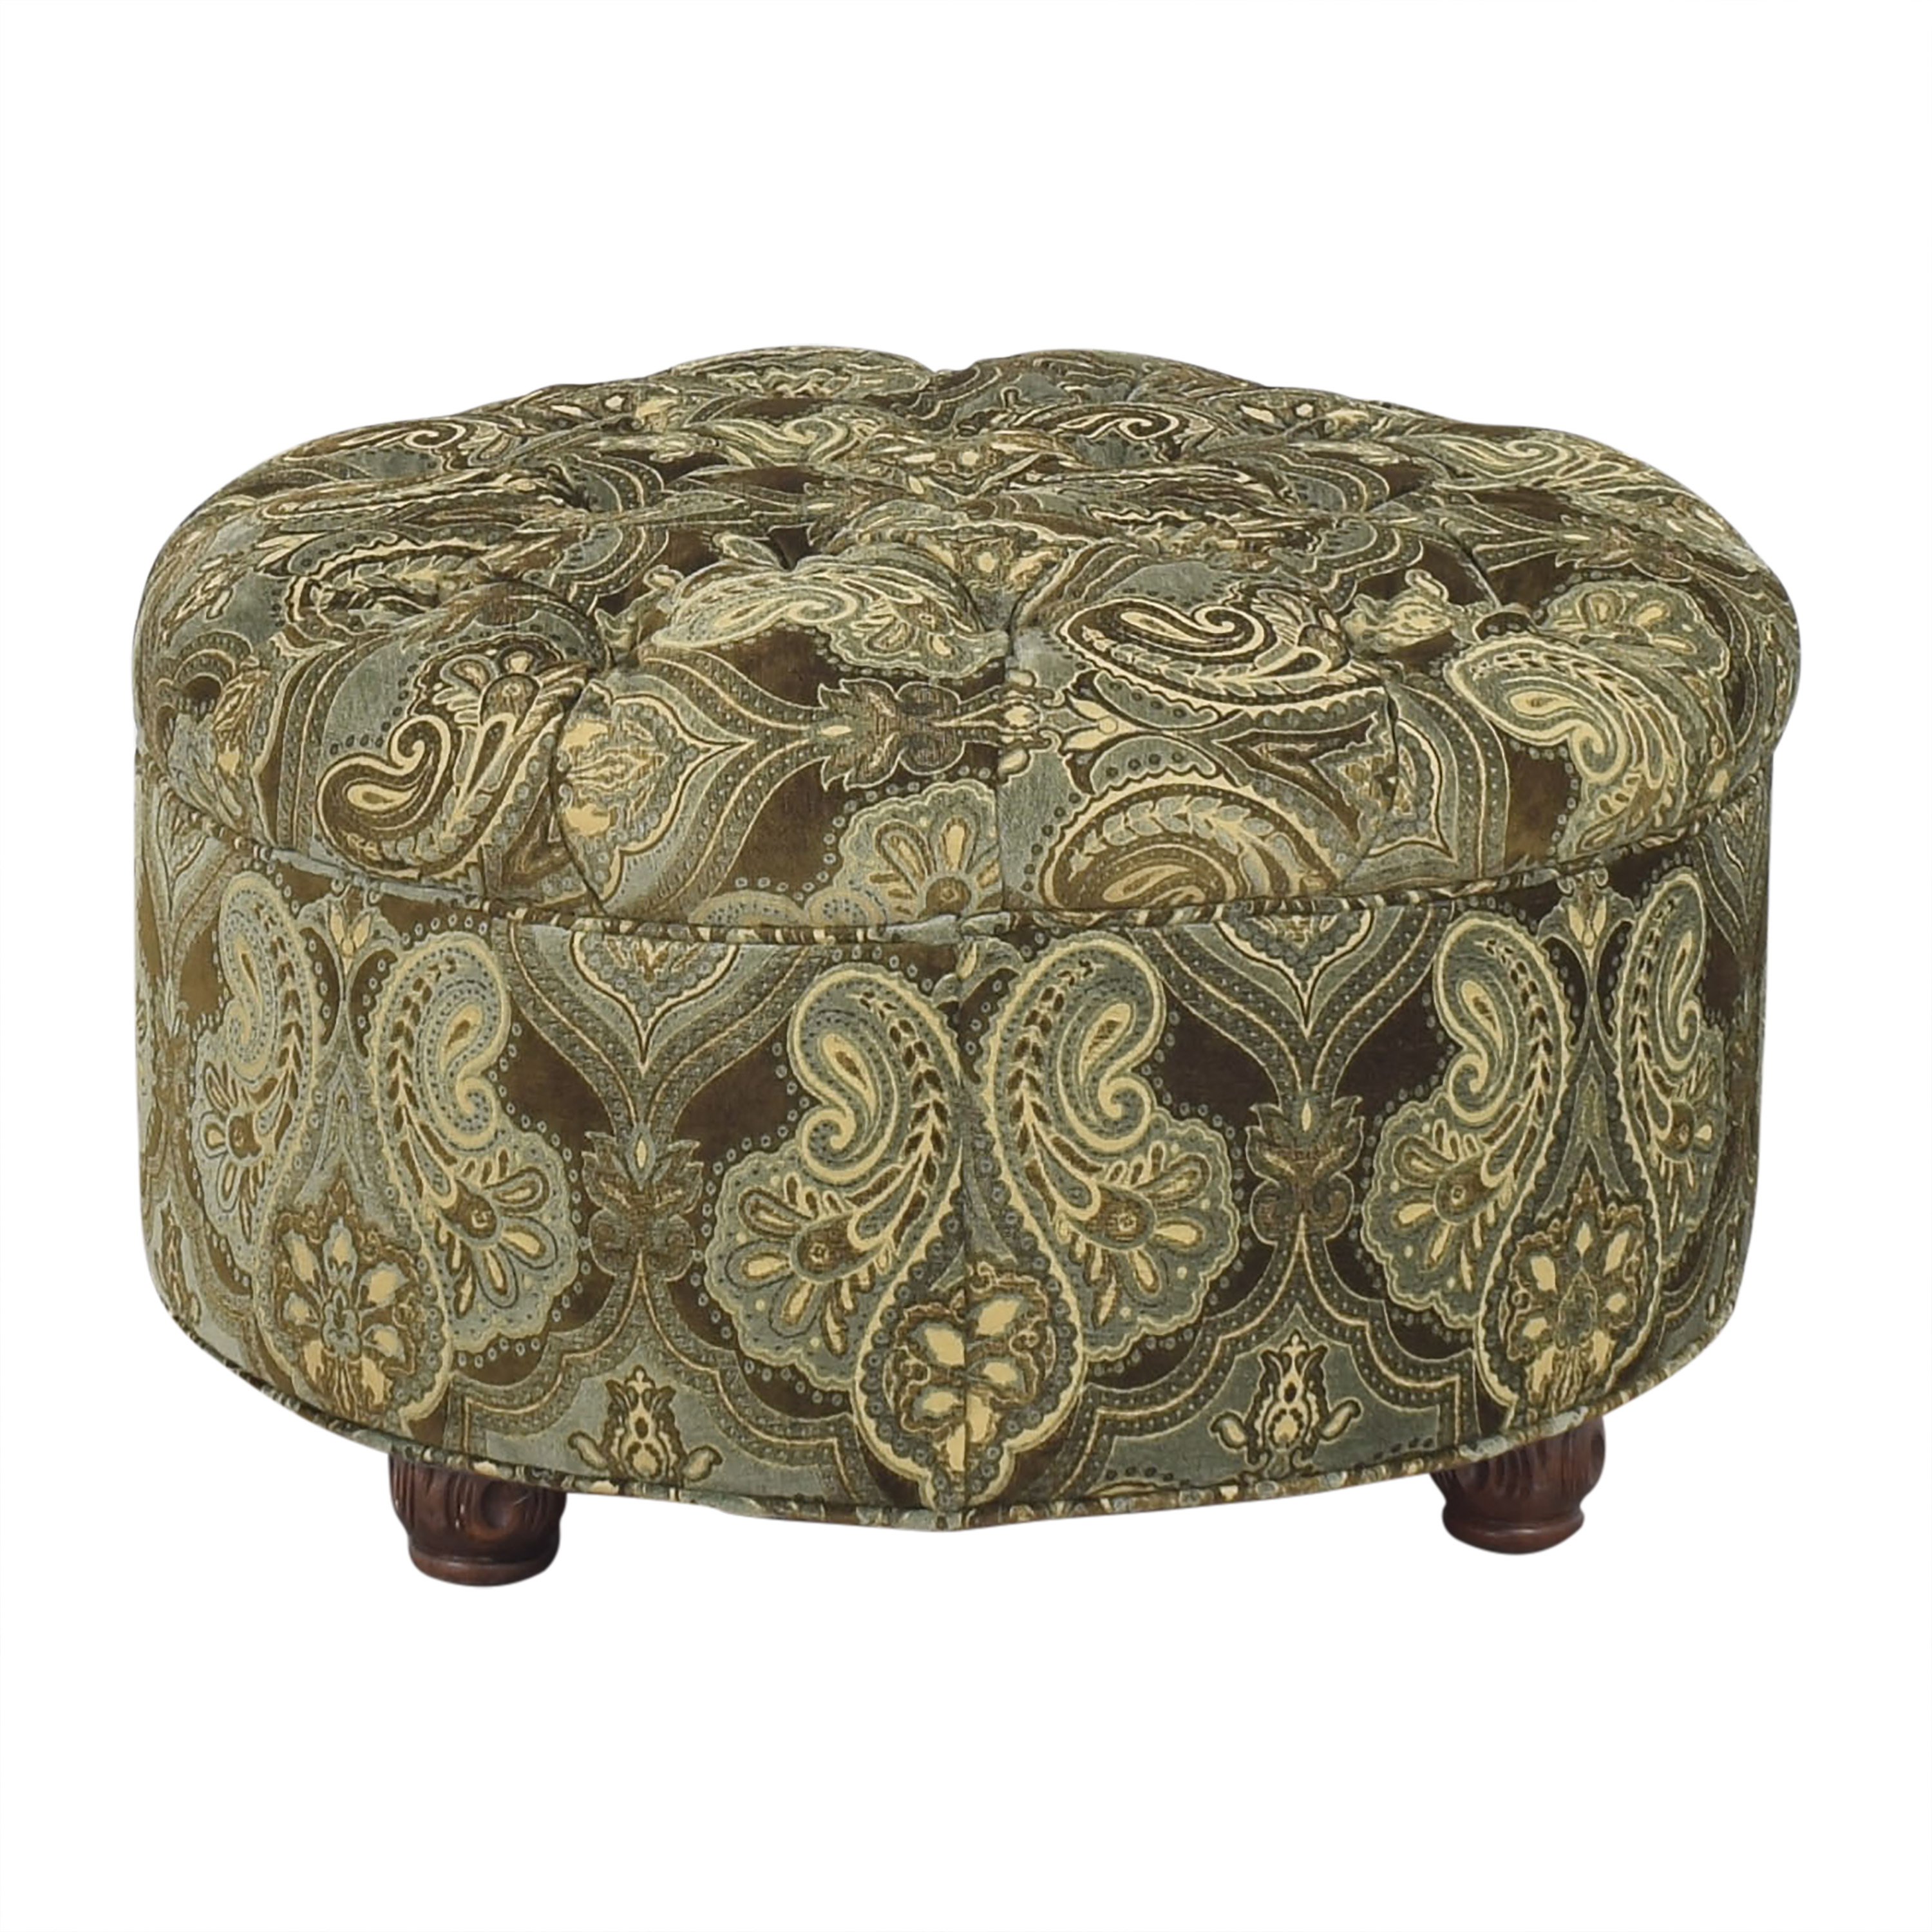 buy Patterned Round Ottoman  Ottomans